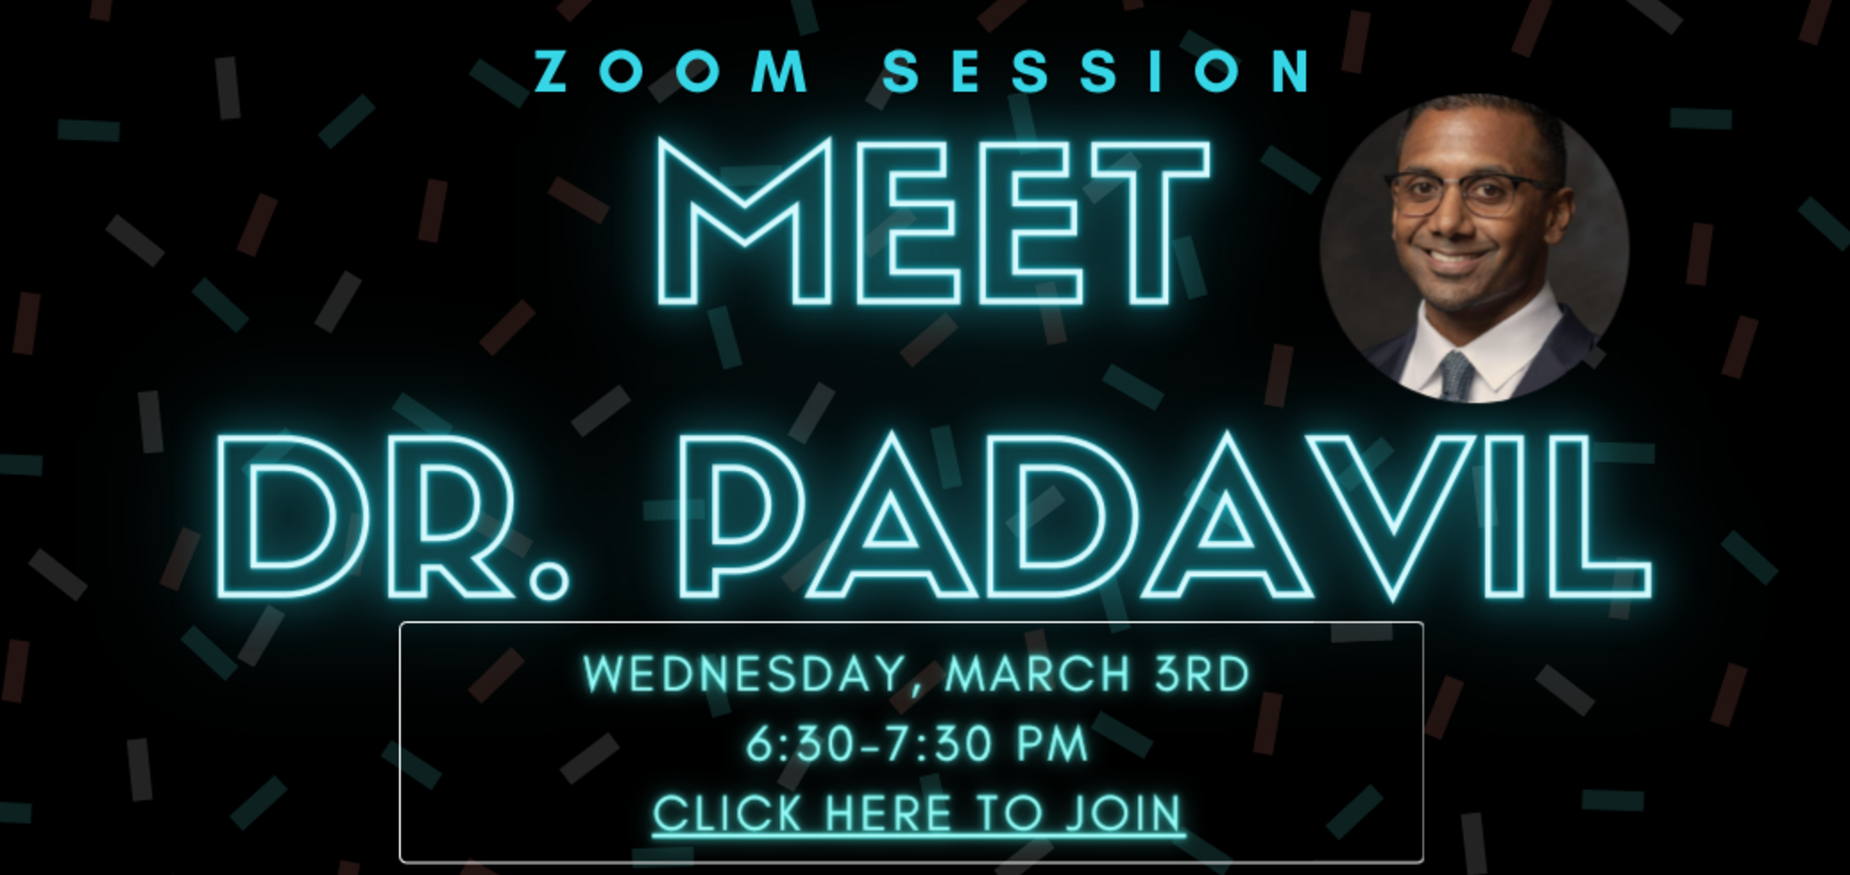 Meet Dr. Padavil. Zoom meeting Wed. March 3 6:30-7:30pm